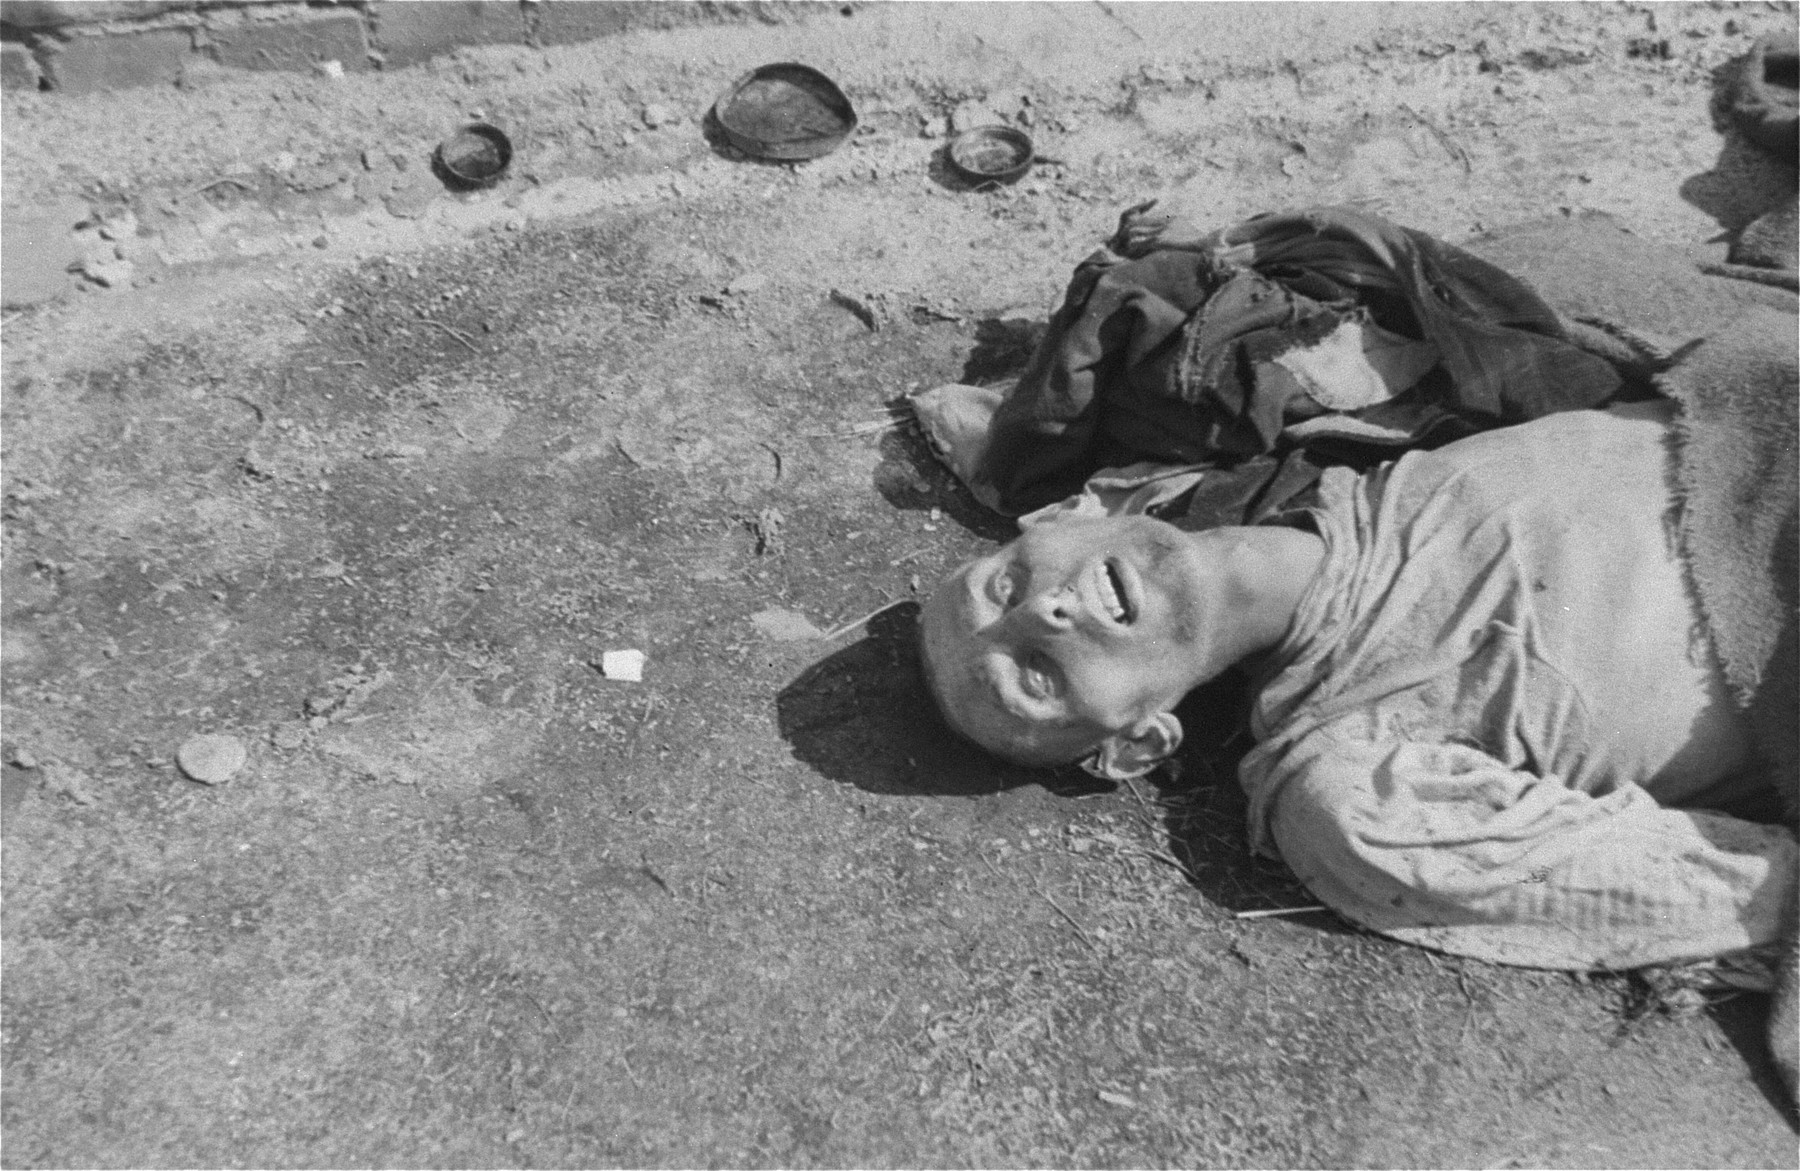 The corpse of a man in Woebbelin who died of starvation prior to the liberation of the camp by U.S. troops.